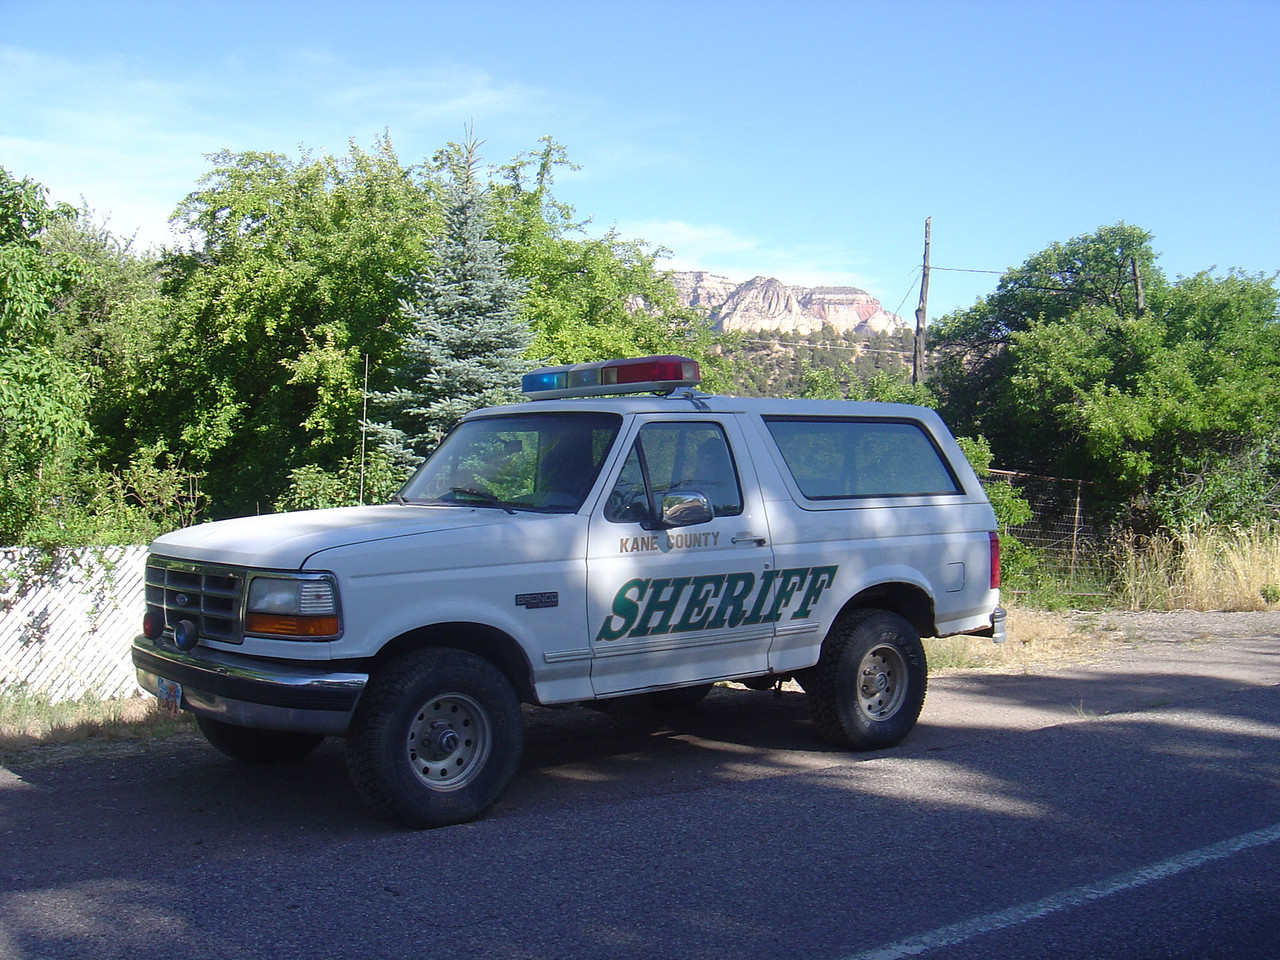 This is the patrol vehicle that was posted at the north end of Mt. Carmel, Ut.